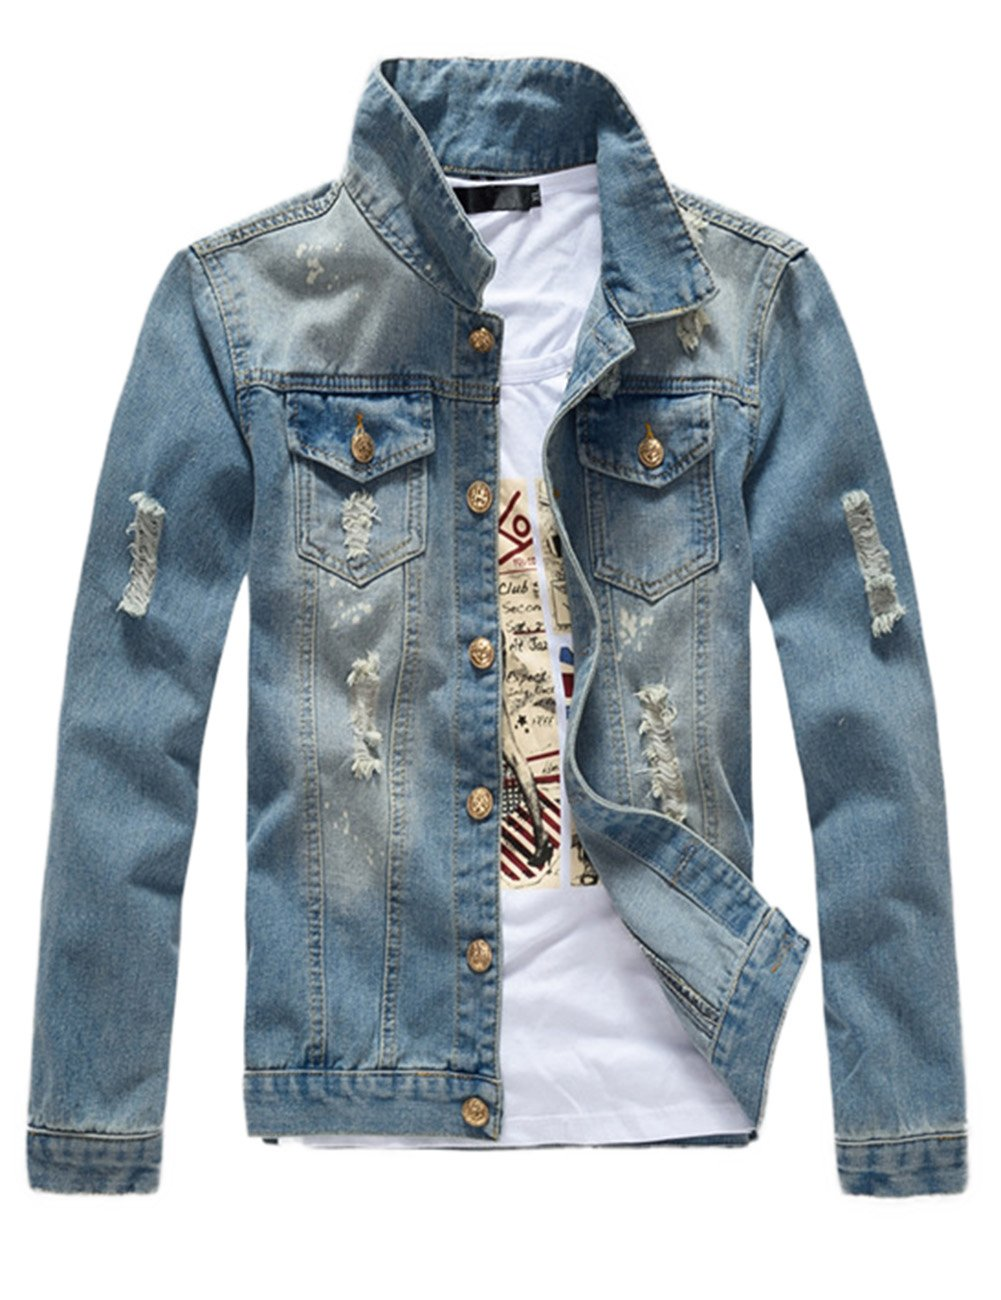 DSDZ Mens Classic Ripped Motorcycle Denim Jacket with Hole (M (Asian 2XL), Blue)